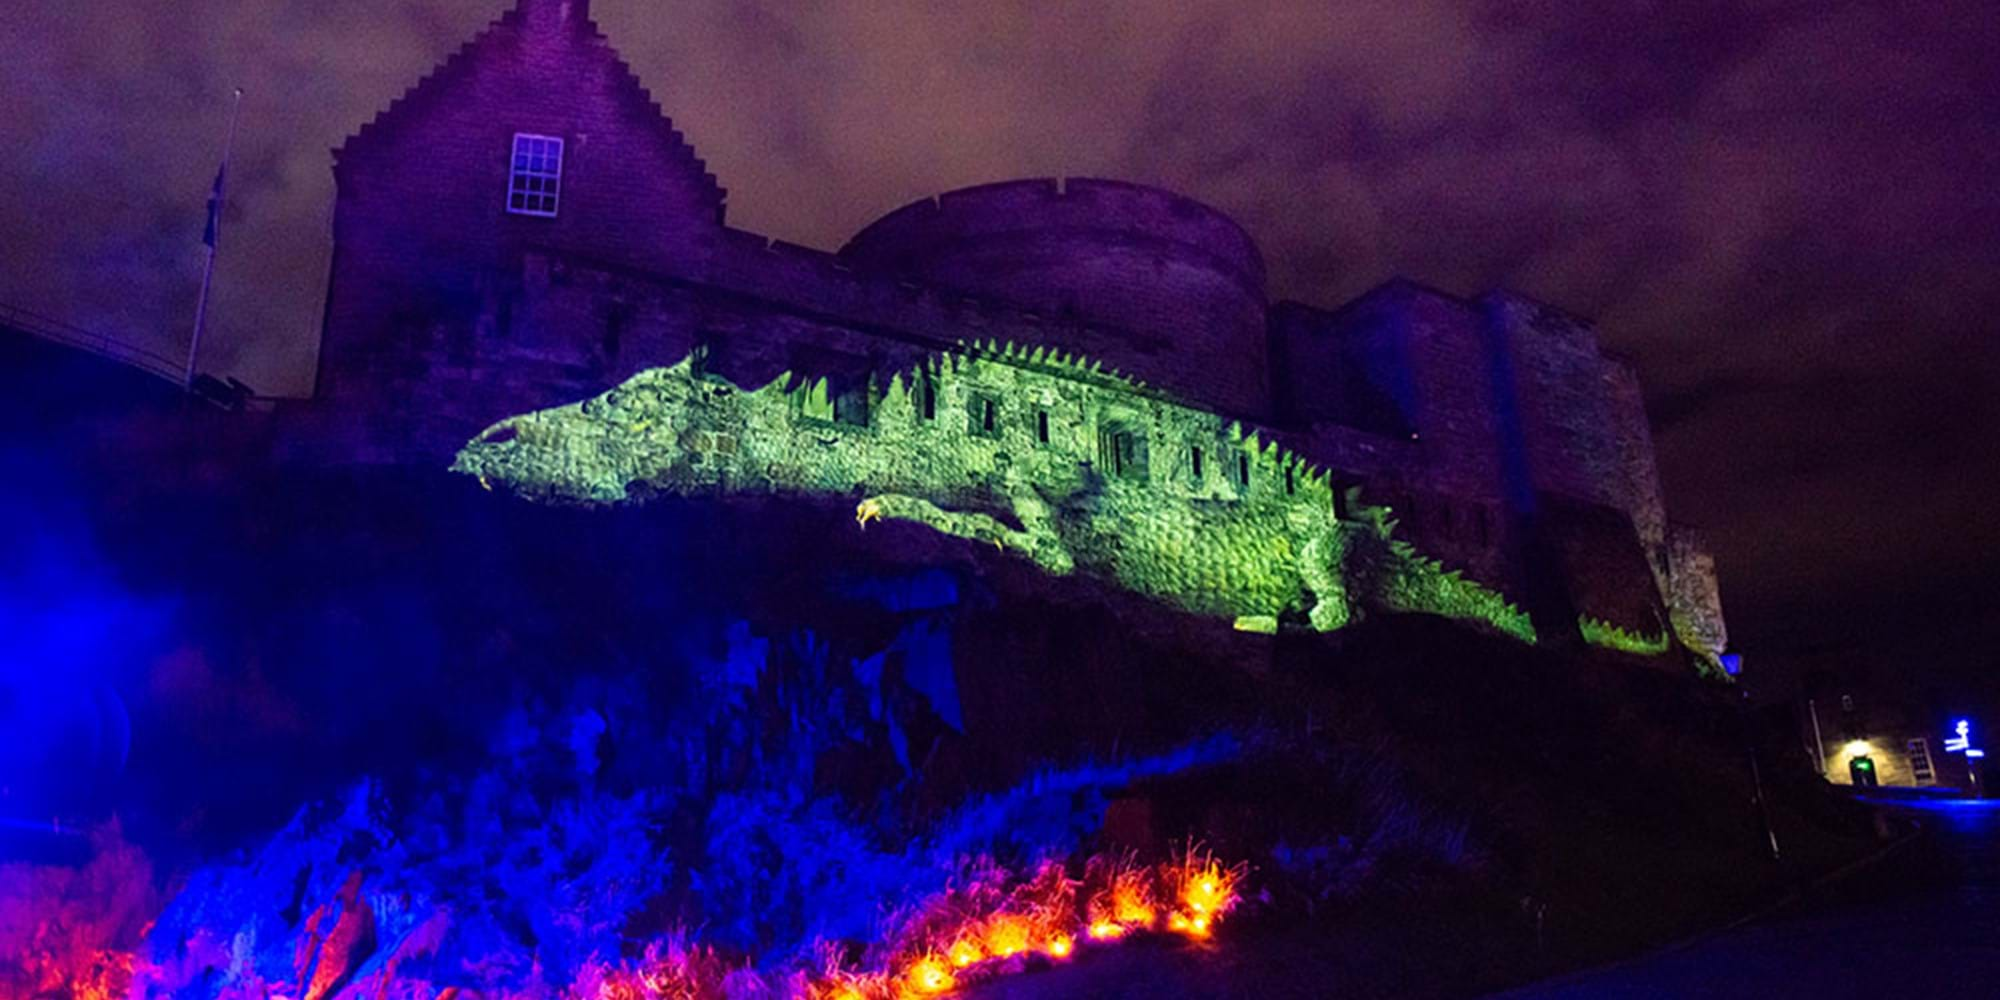 edinburgh castle of light edinburgh castle illumination edinburgh castle